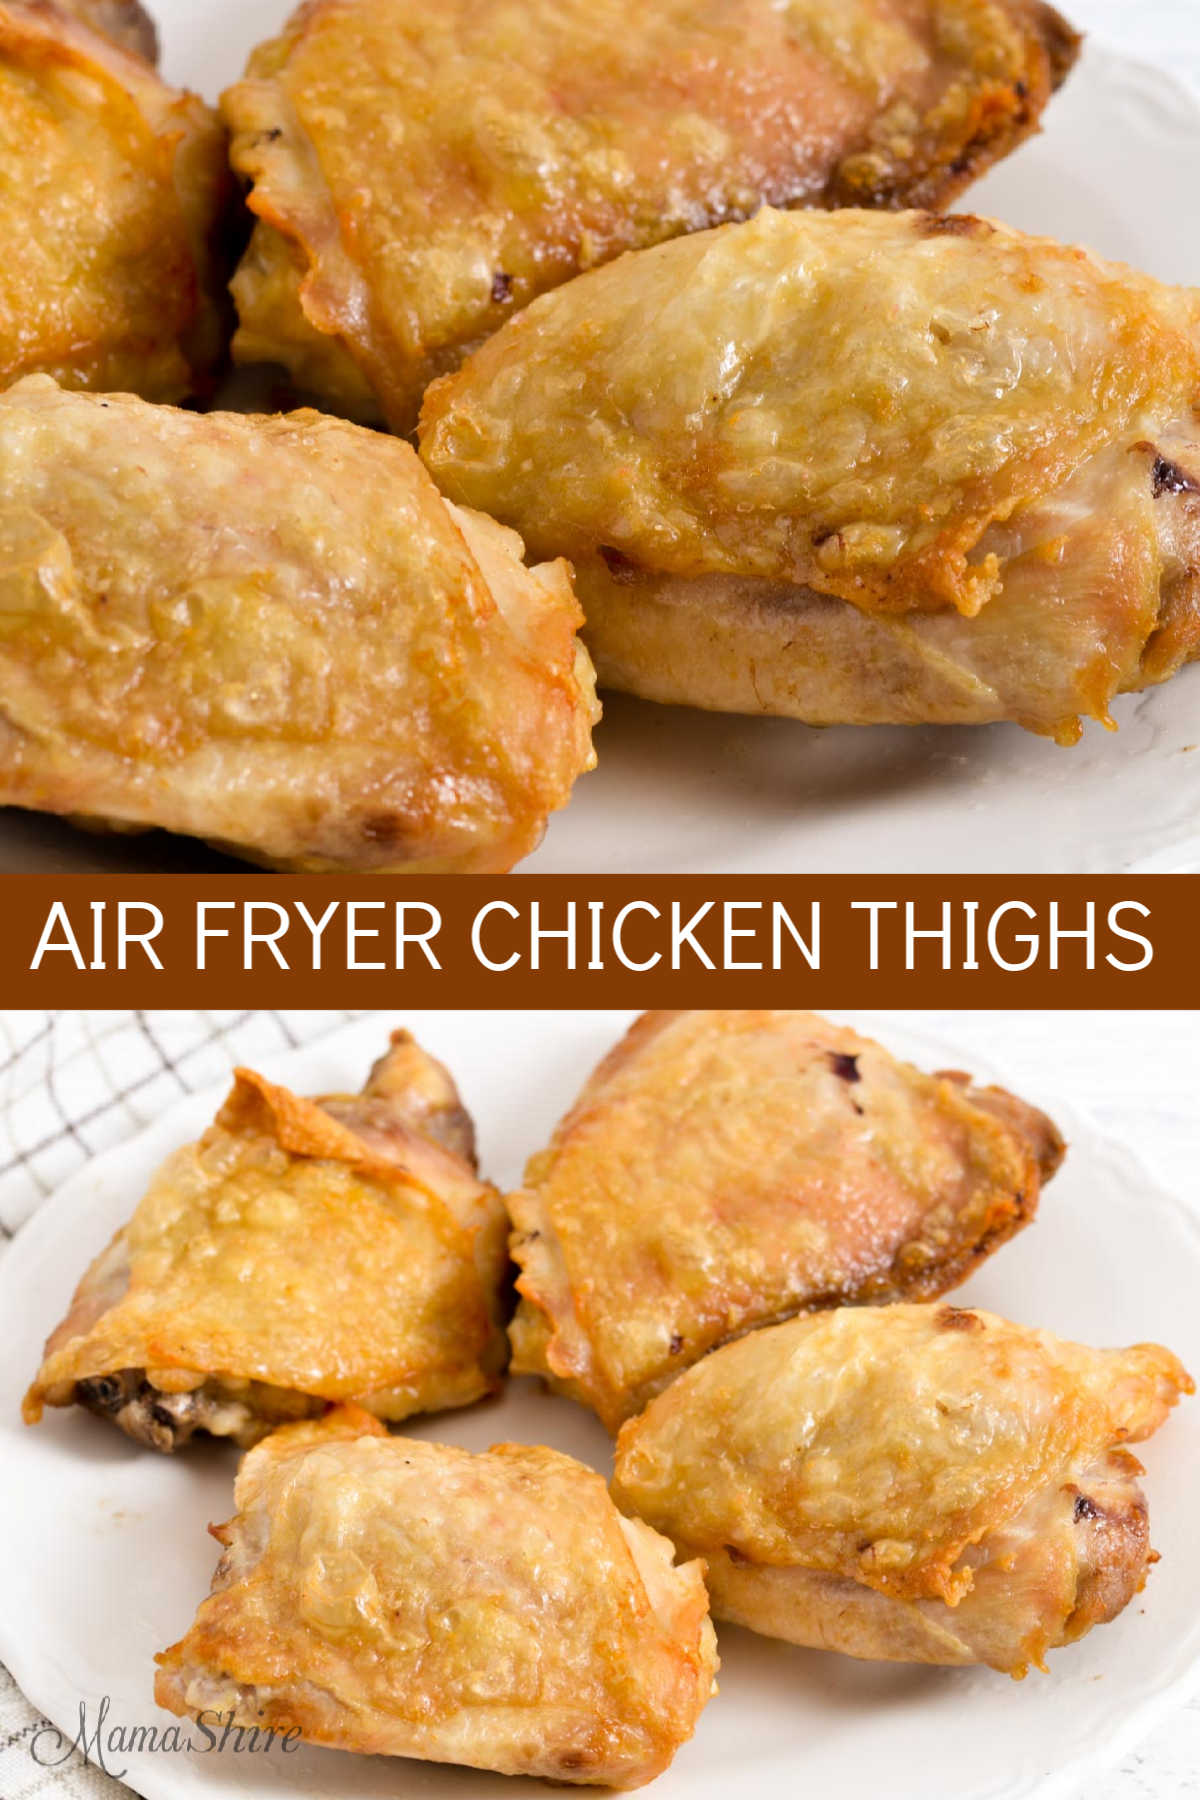 Crispy fried chicken thighs made in an air fryer.